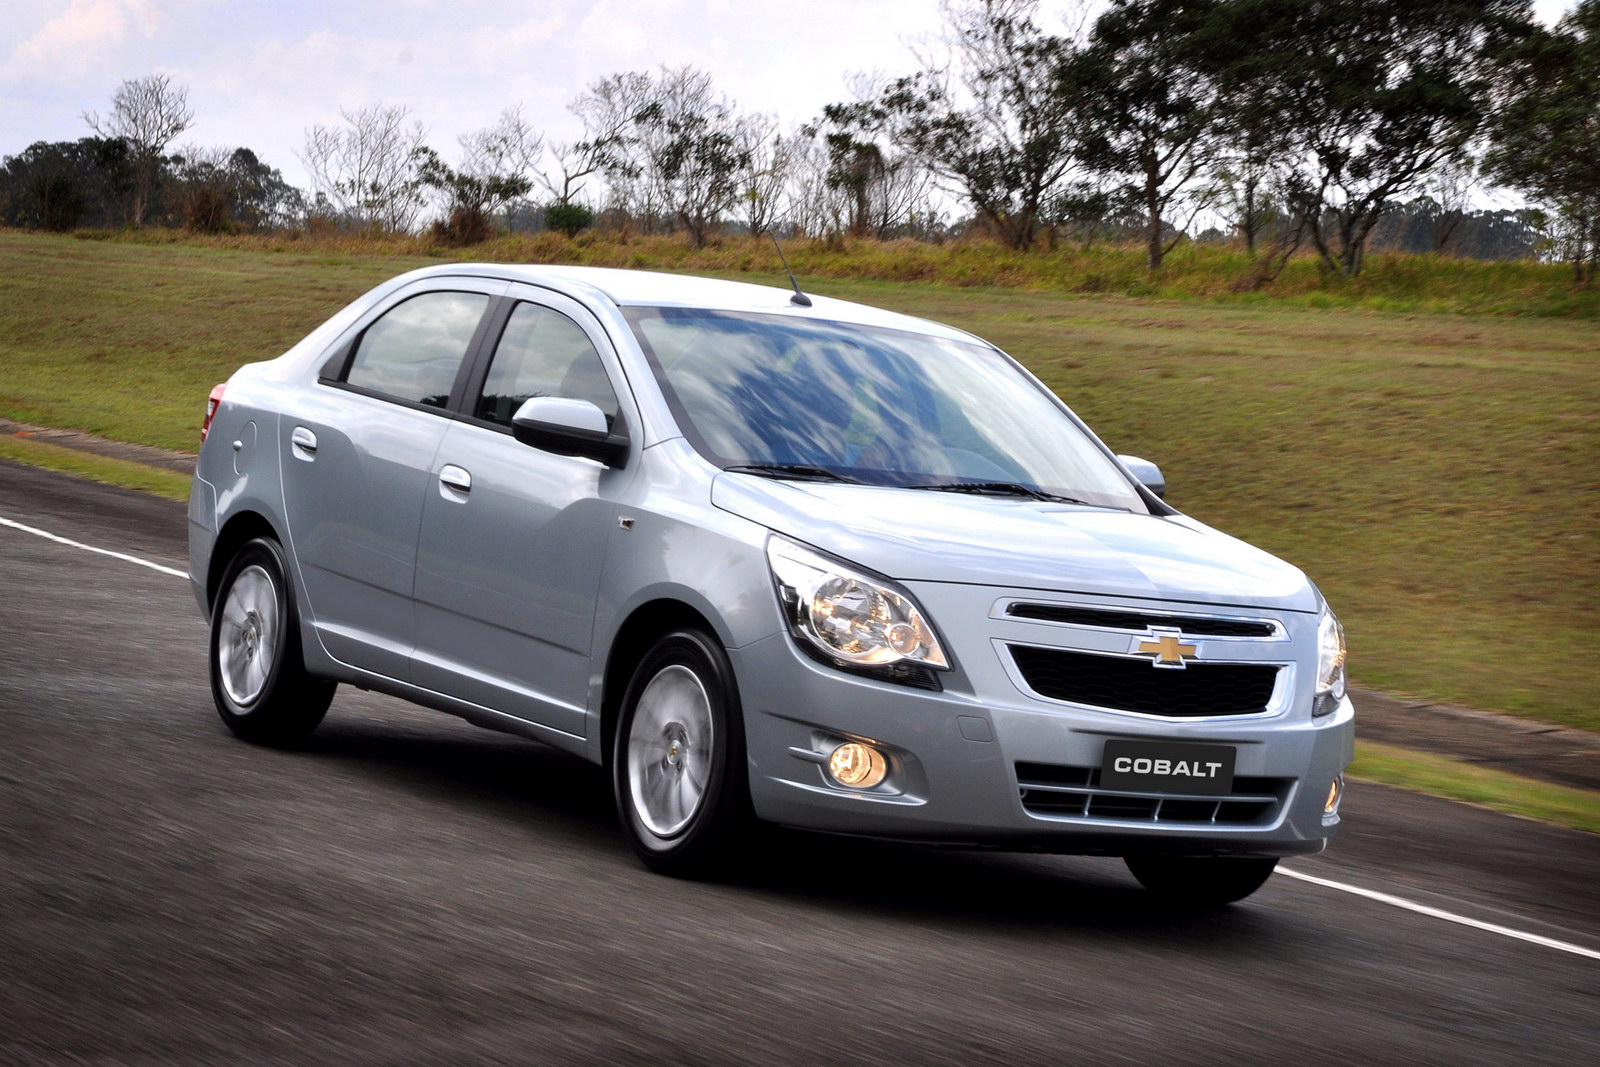 2012 Chevrolet Cobalt Price 23 000